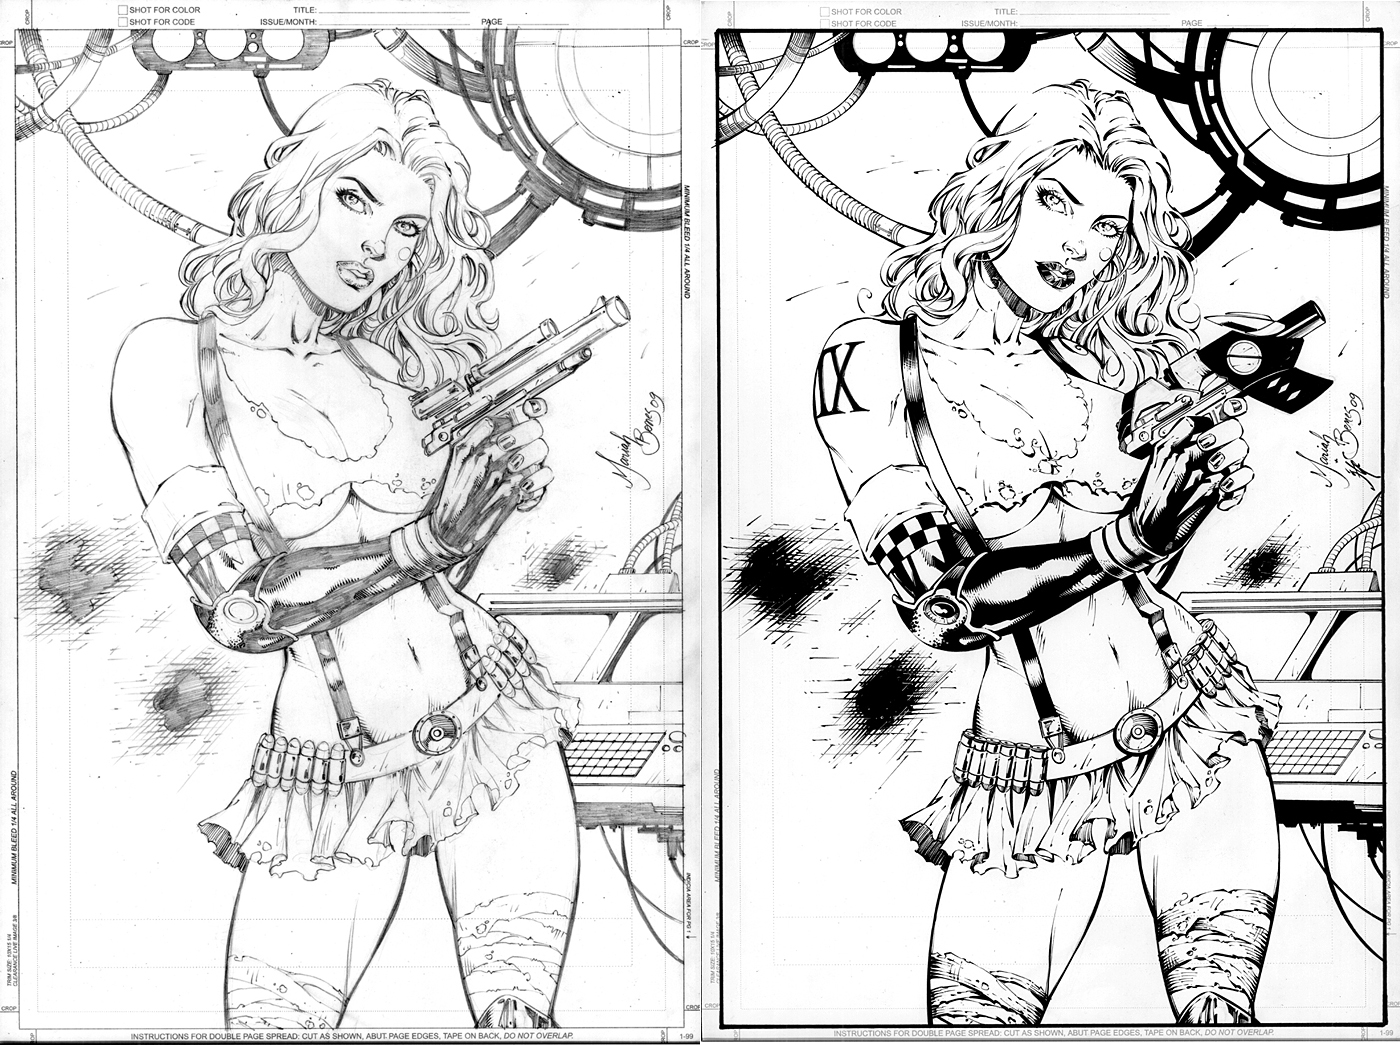 aphrodite ix before and after by jonathanglapion on deviantart